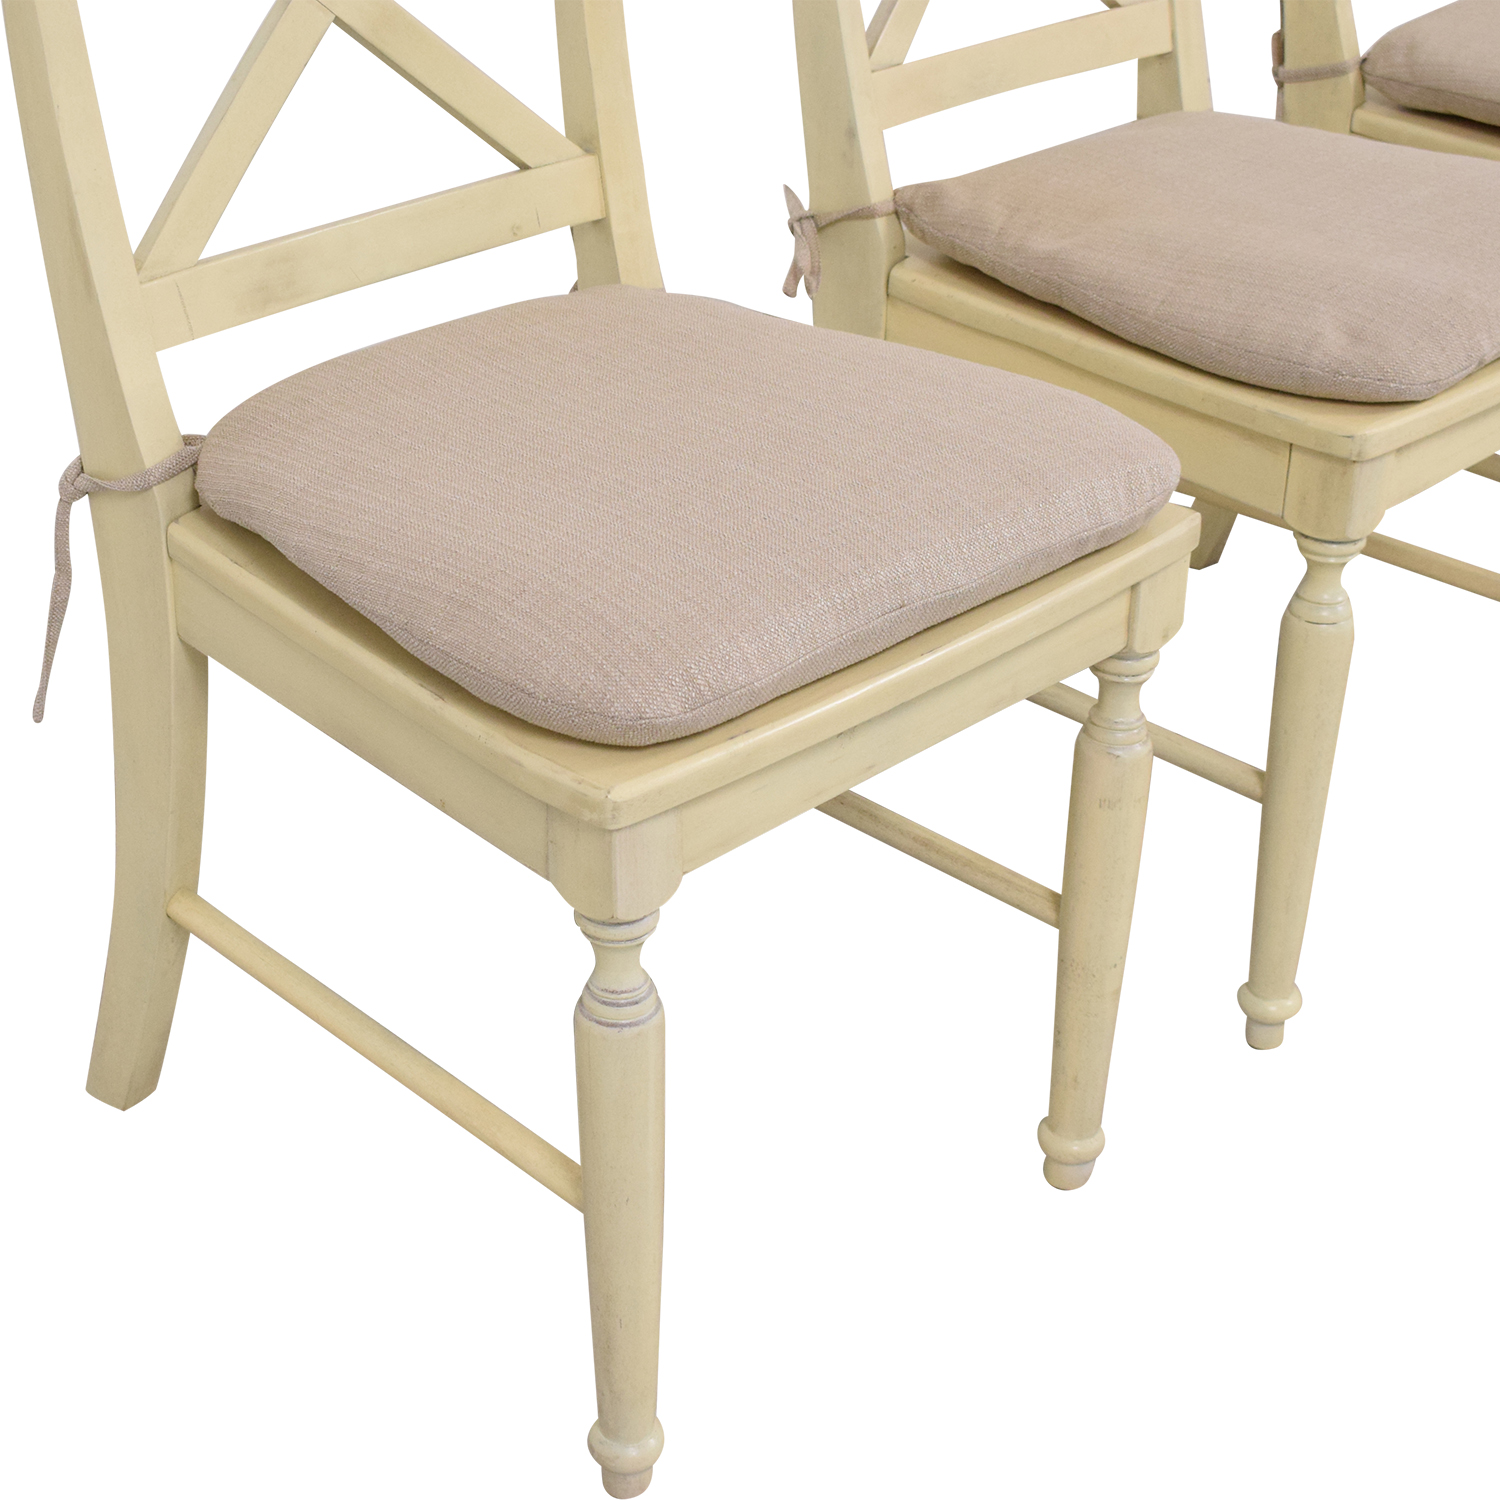 Christopher Knight Home Dining Chairs / Chairs